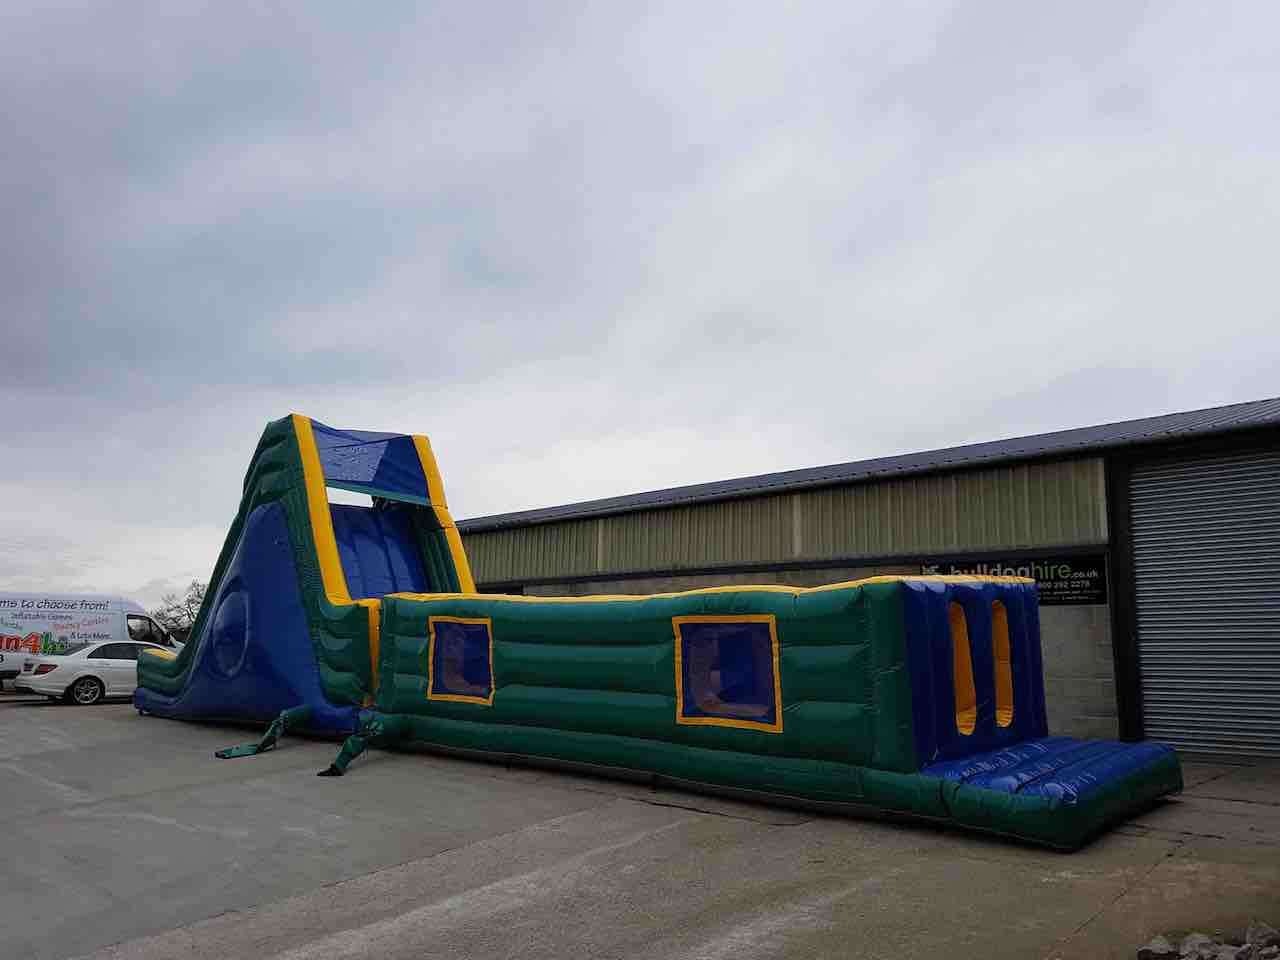 60 foot B inflatable obstacle assault course